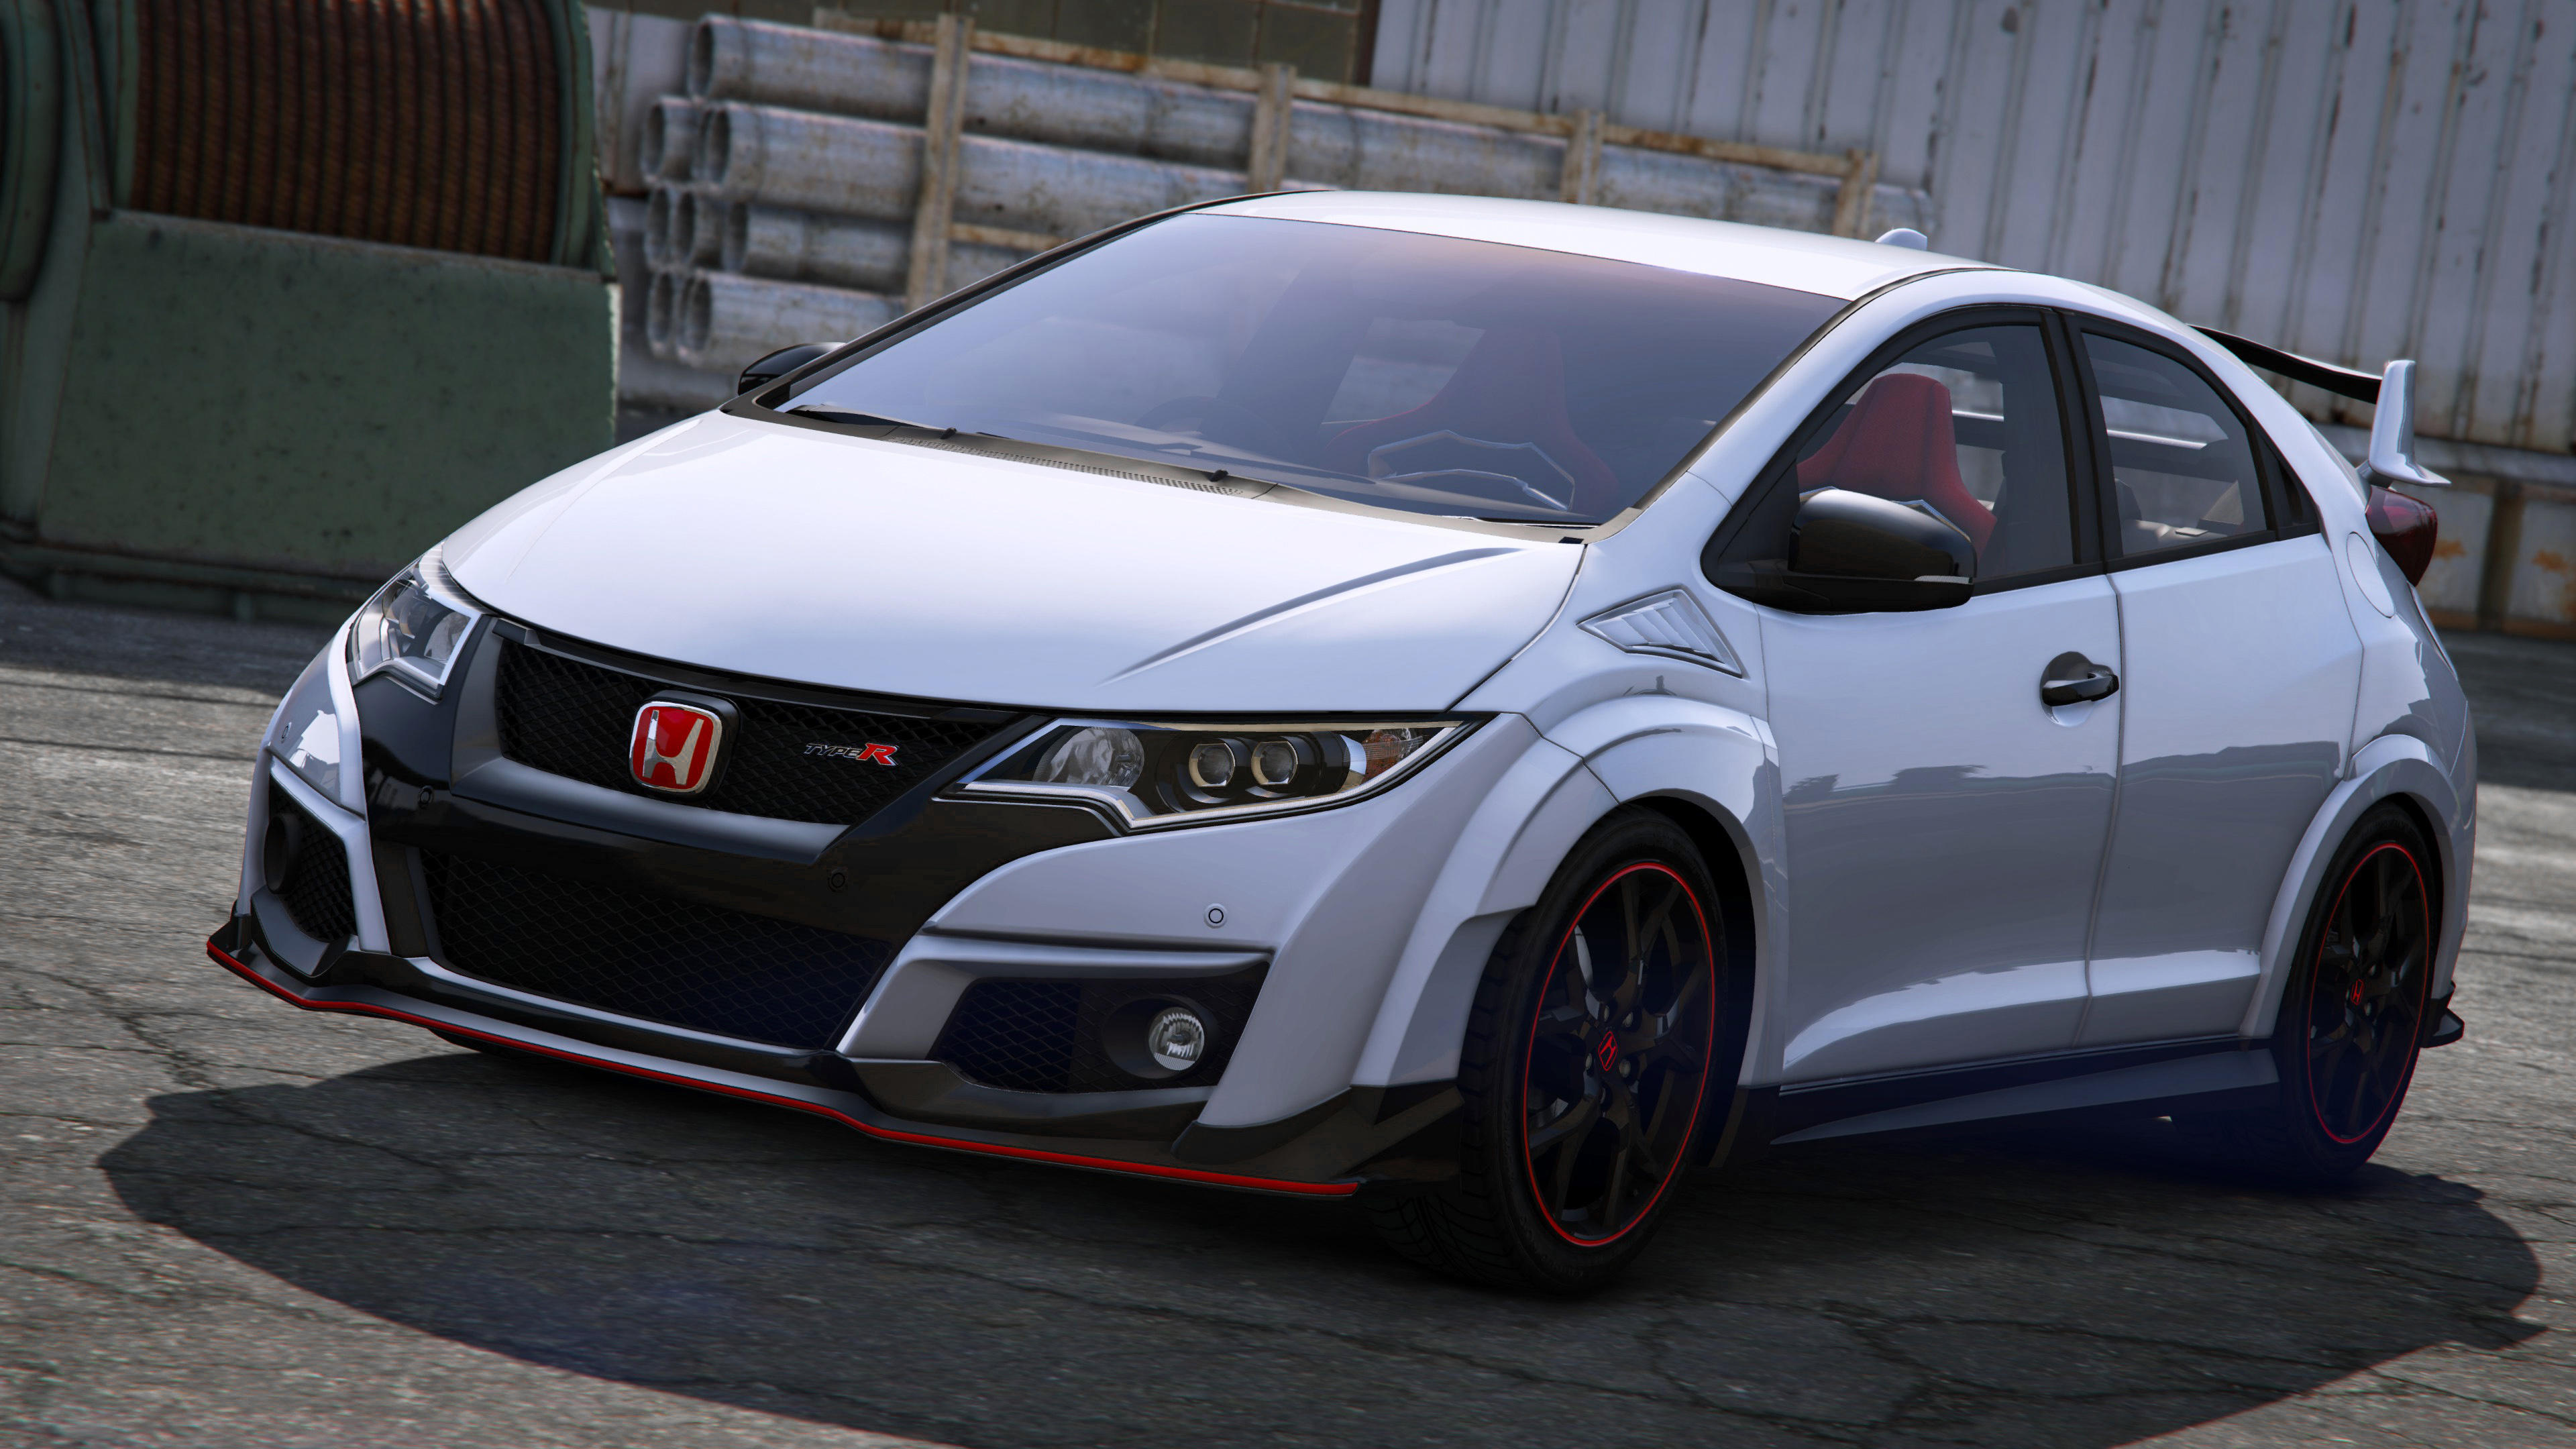 2015 honda civic type r fk2 add on rhd gta5 for Buy honda civic type r